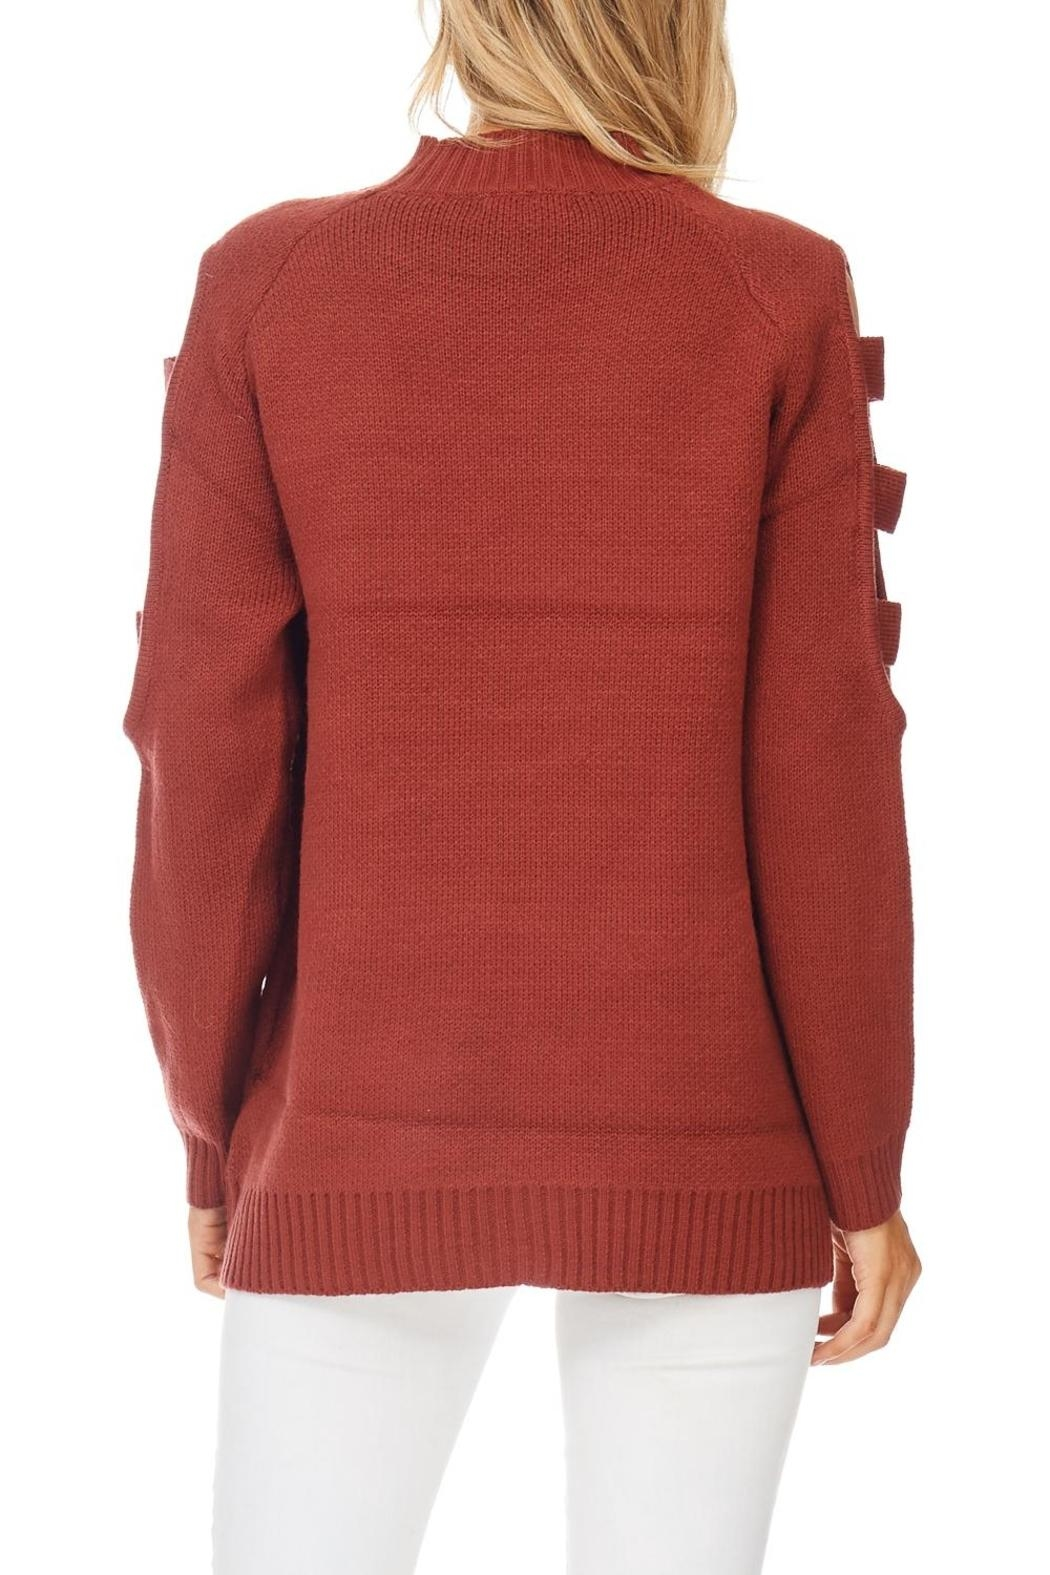 LoveRiche Brick Ladder Sleeve Sweater - Back Cropped Image